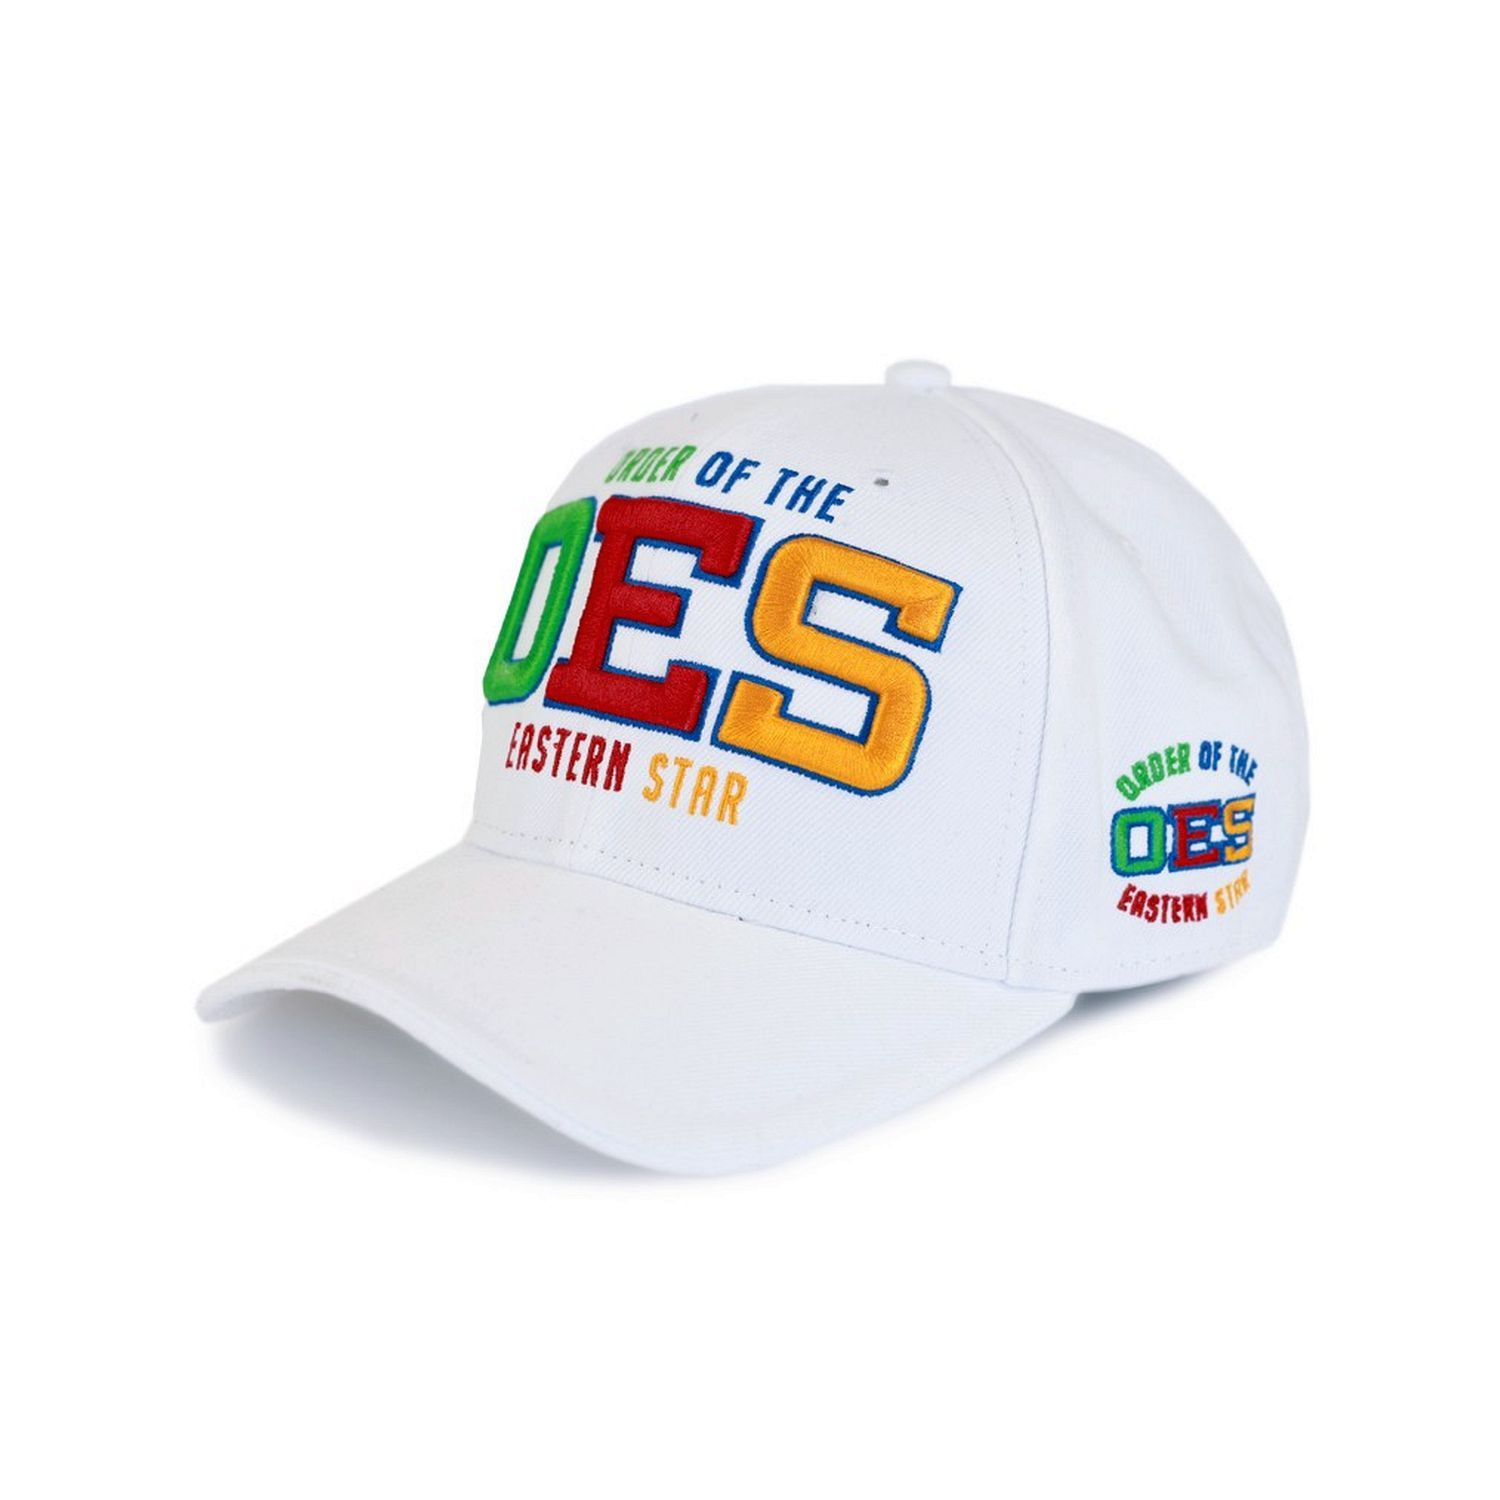 Order of the Eastern Star Adjustable Baseball Cap (White) by Big Boy Headgear